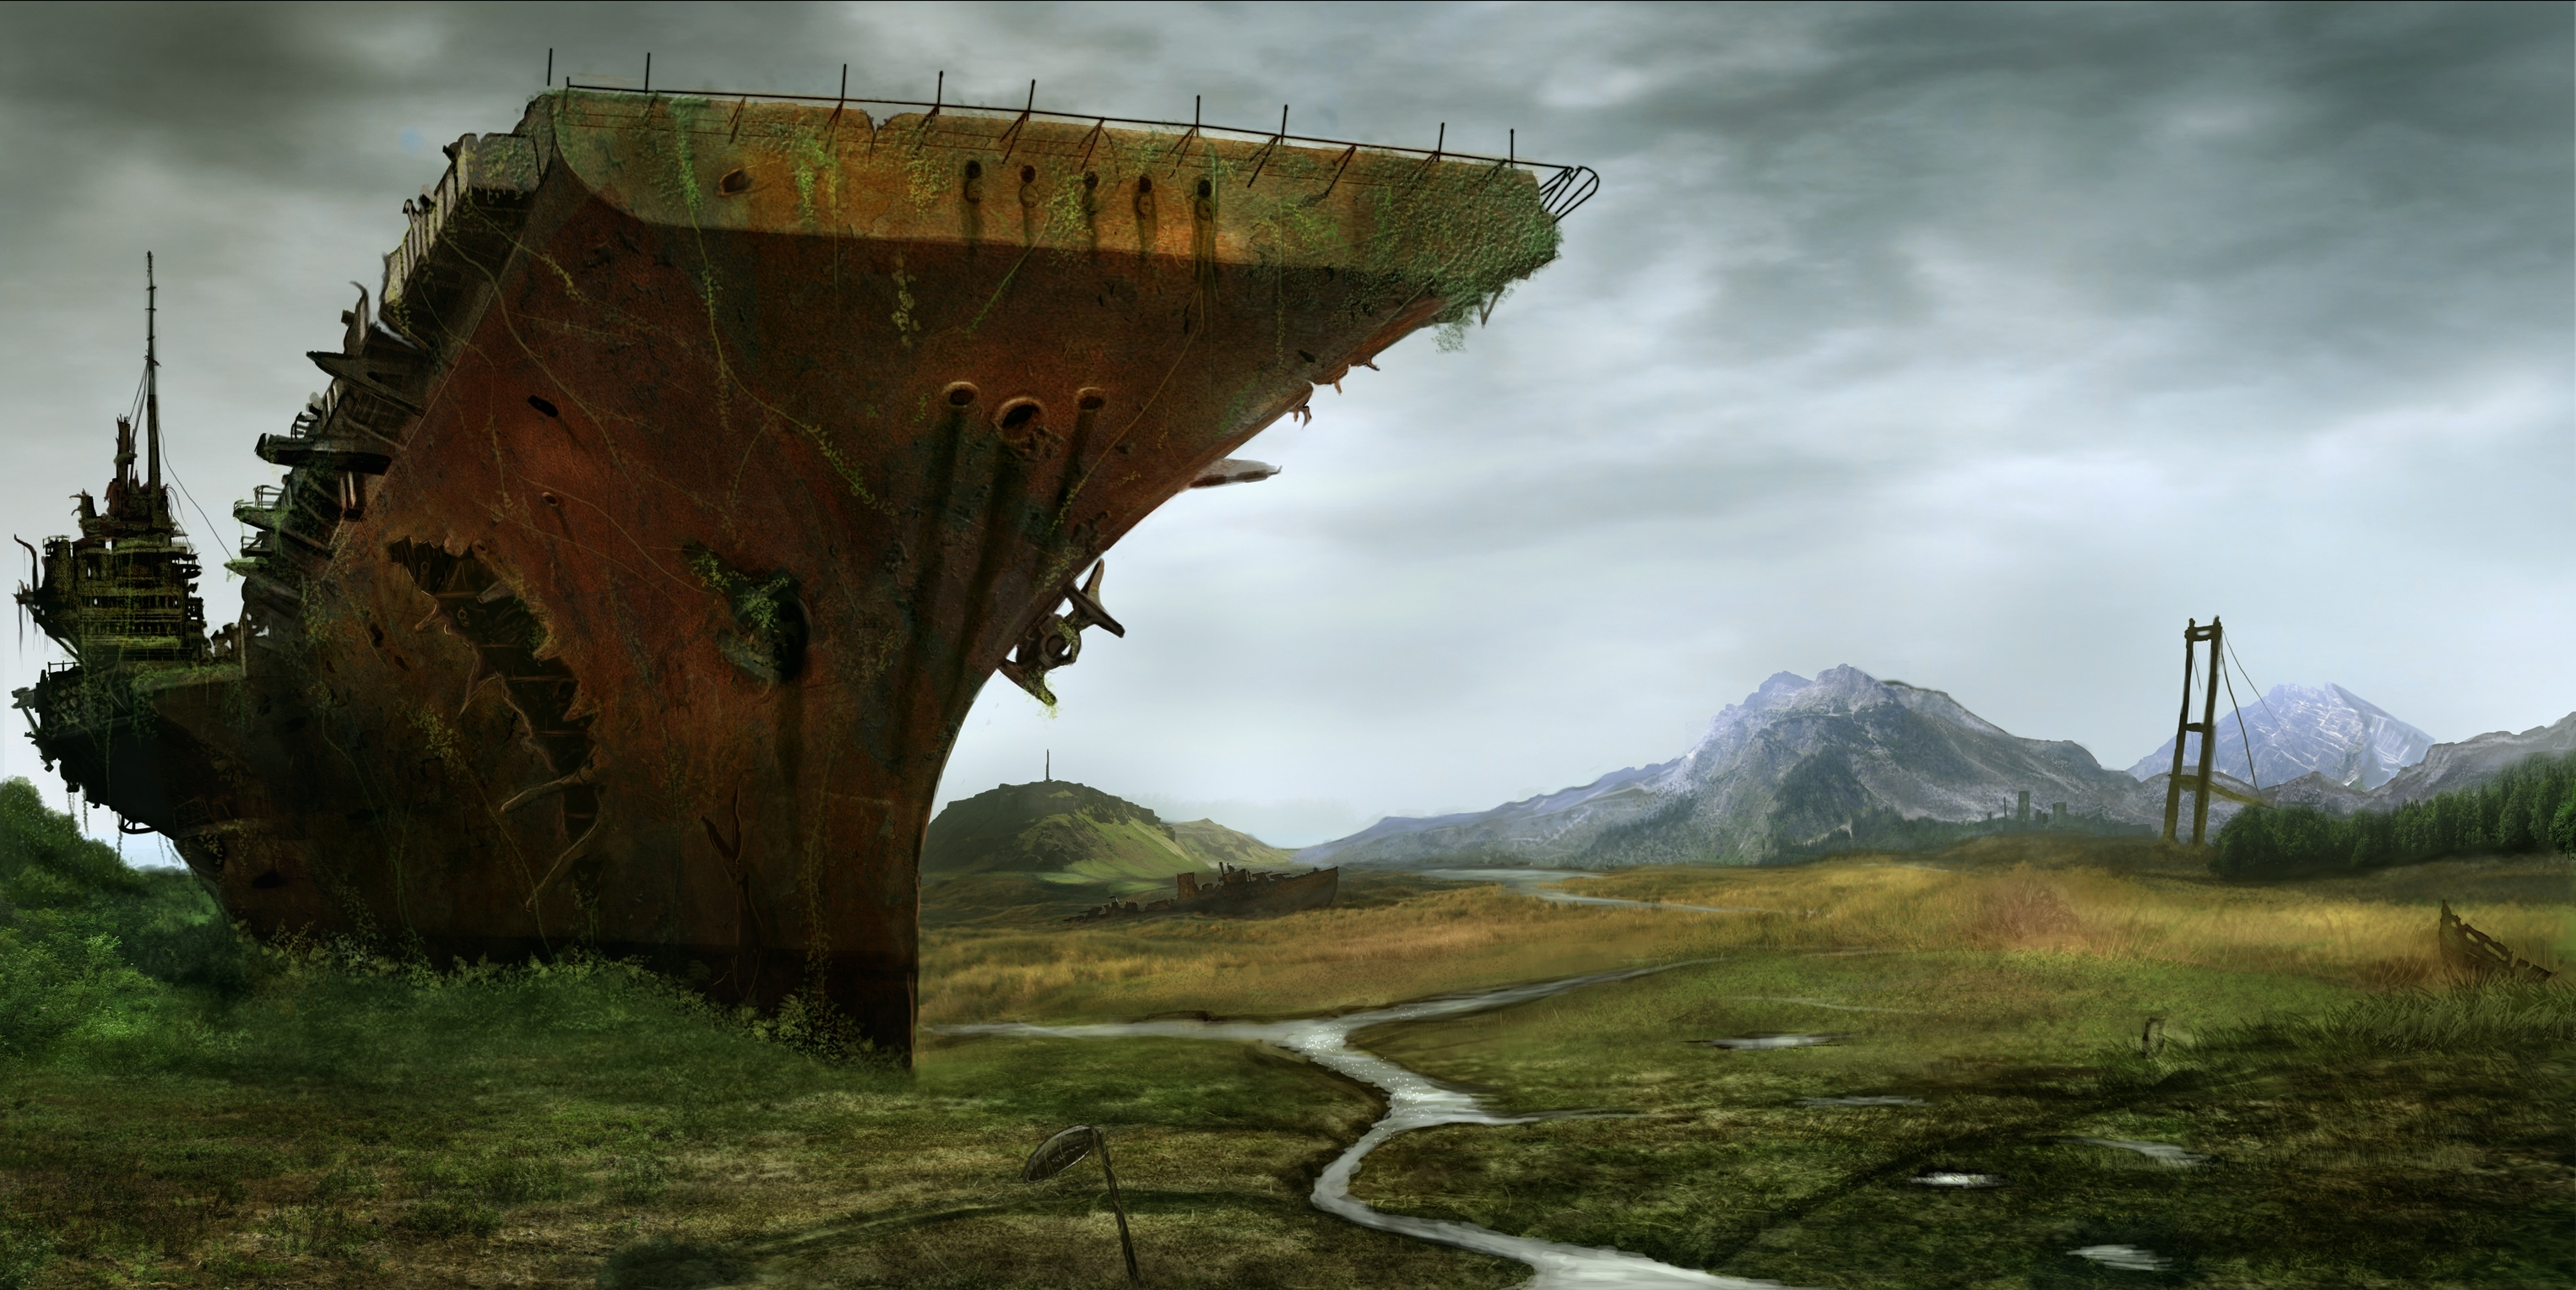 304 post apocalyptic hd wallpapers | background images - wallpaper abyss